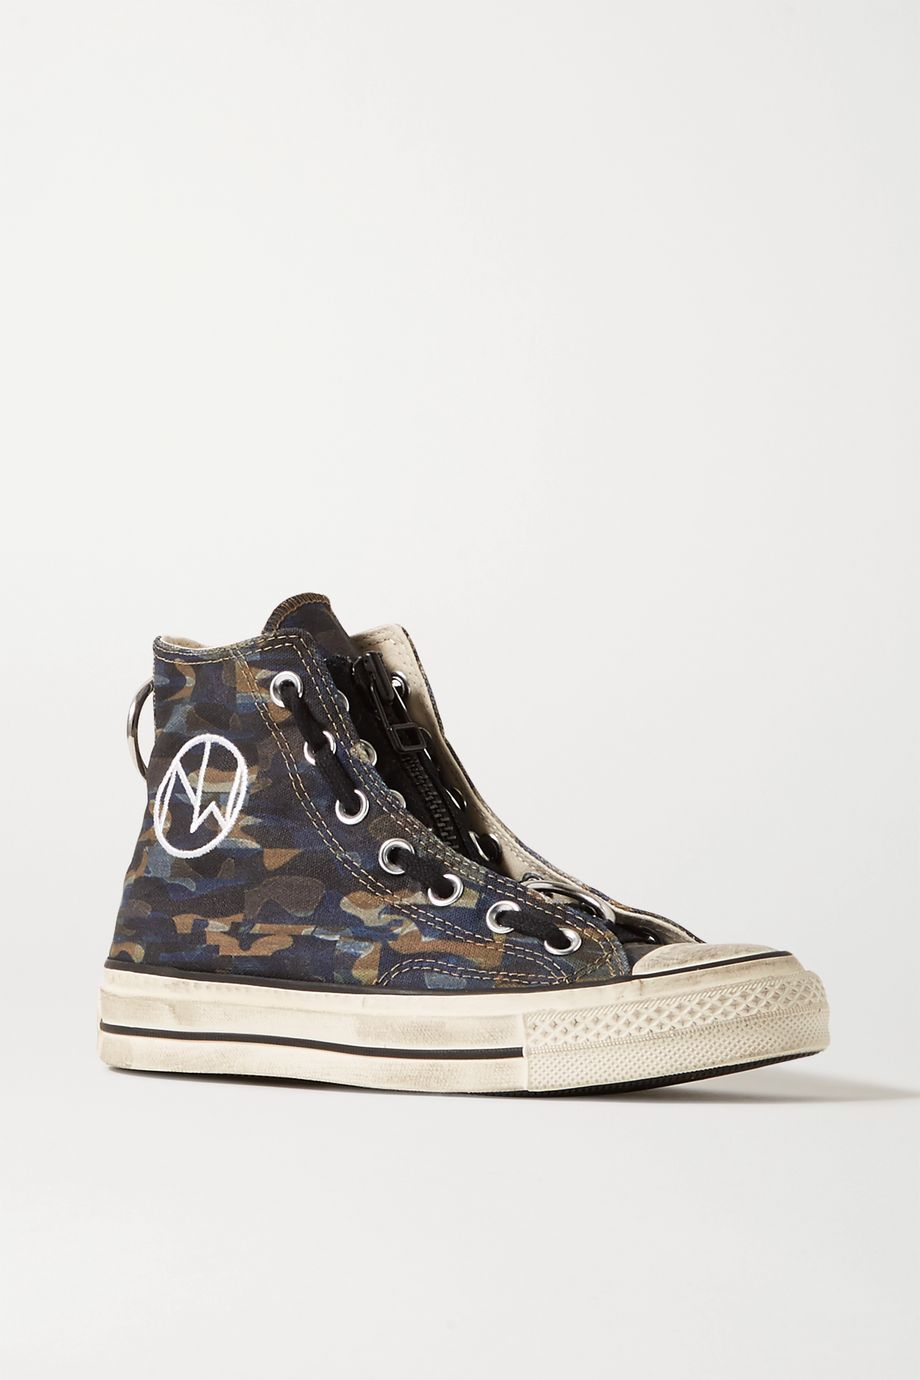 Converse + Undercover Chuck Taylor All Star 70 embellished camouflage-print canvas high-top sneakers